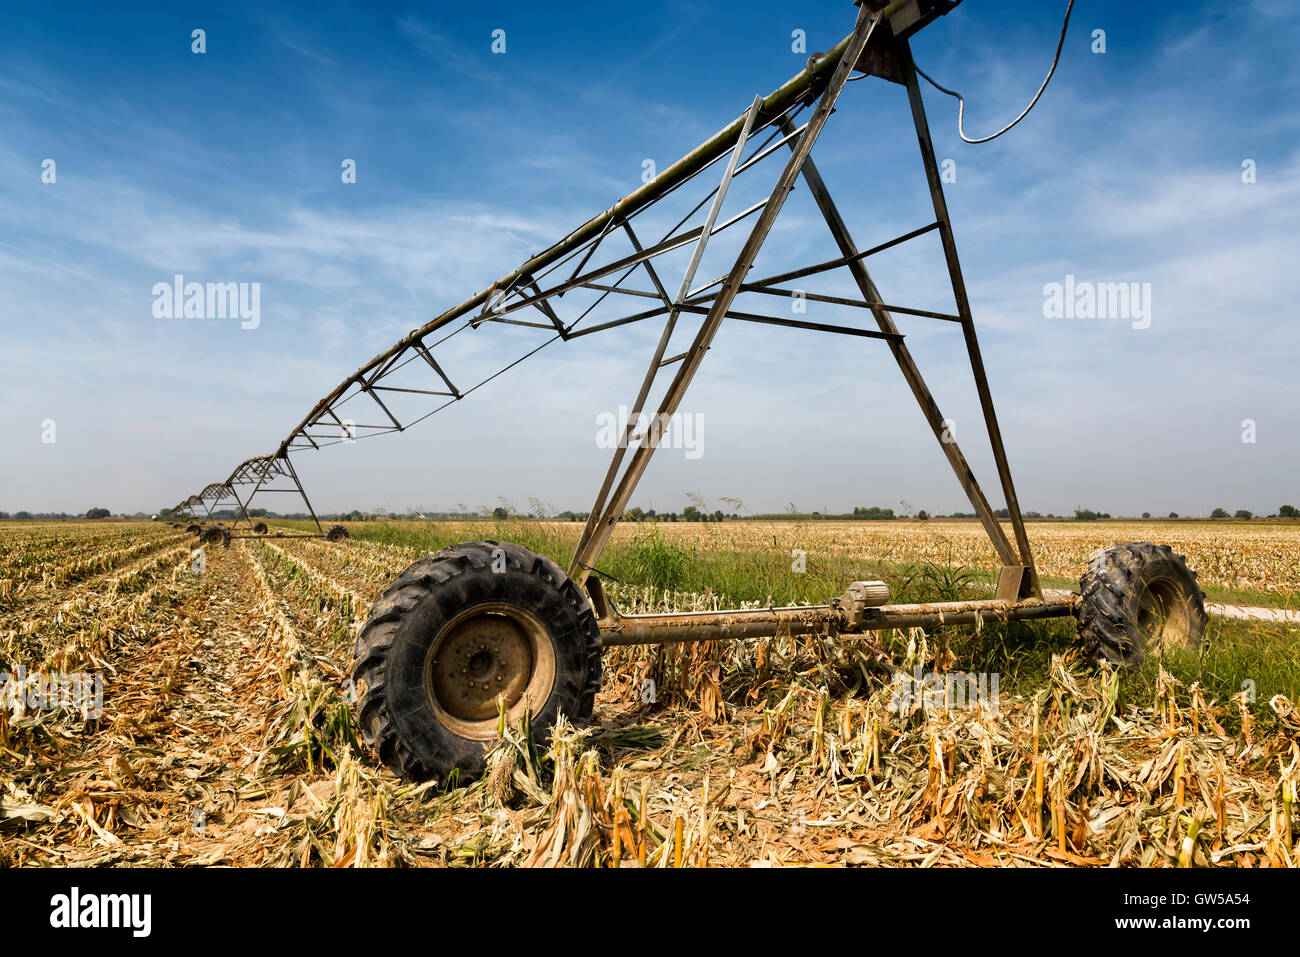 irrigation system on a harvested field - Stock Image